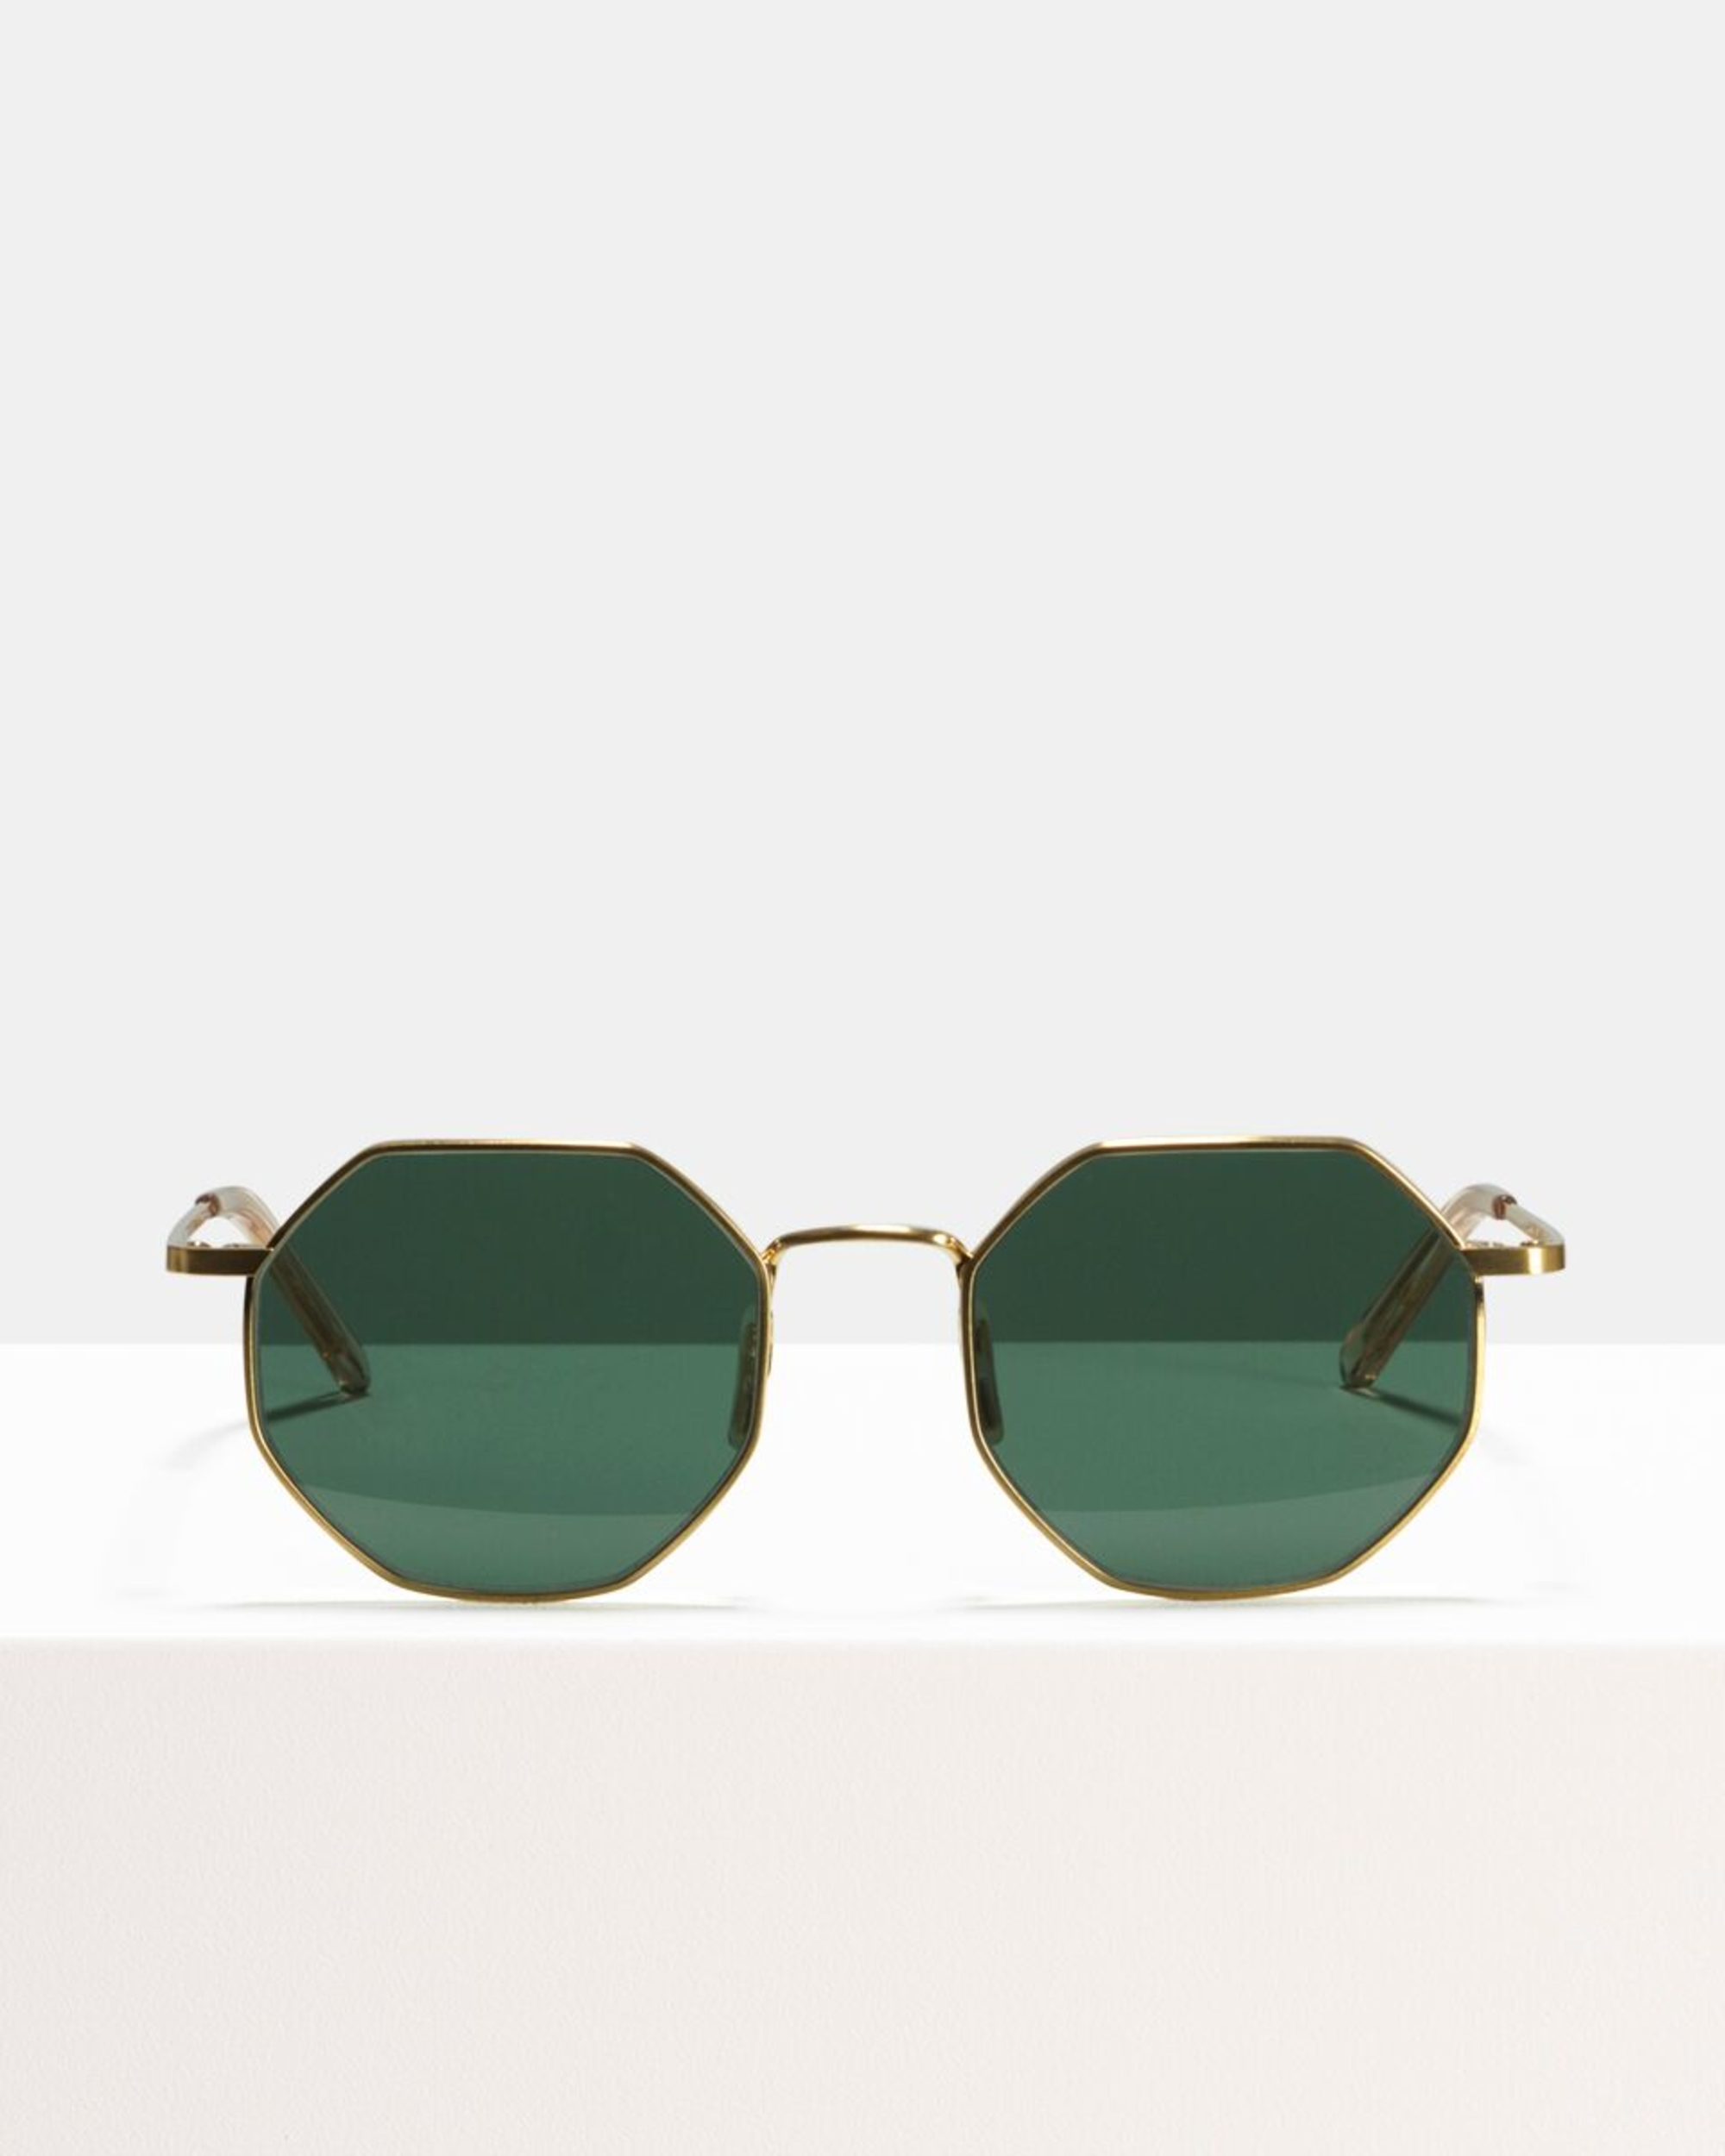 Ace & Tate Sunglasses |  Metall in Gold